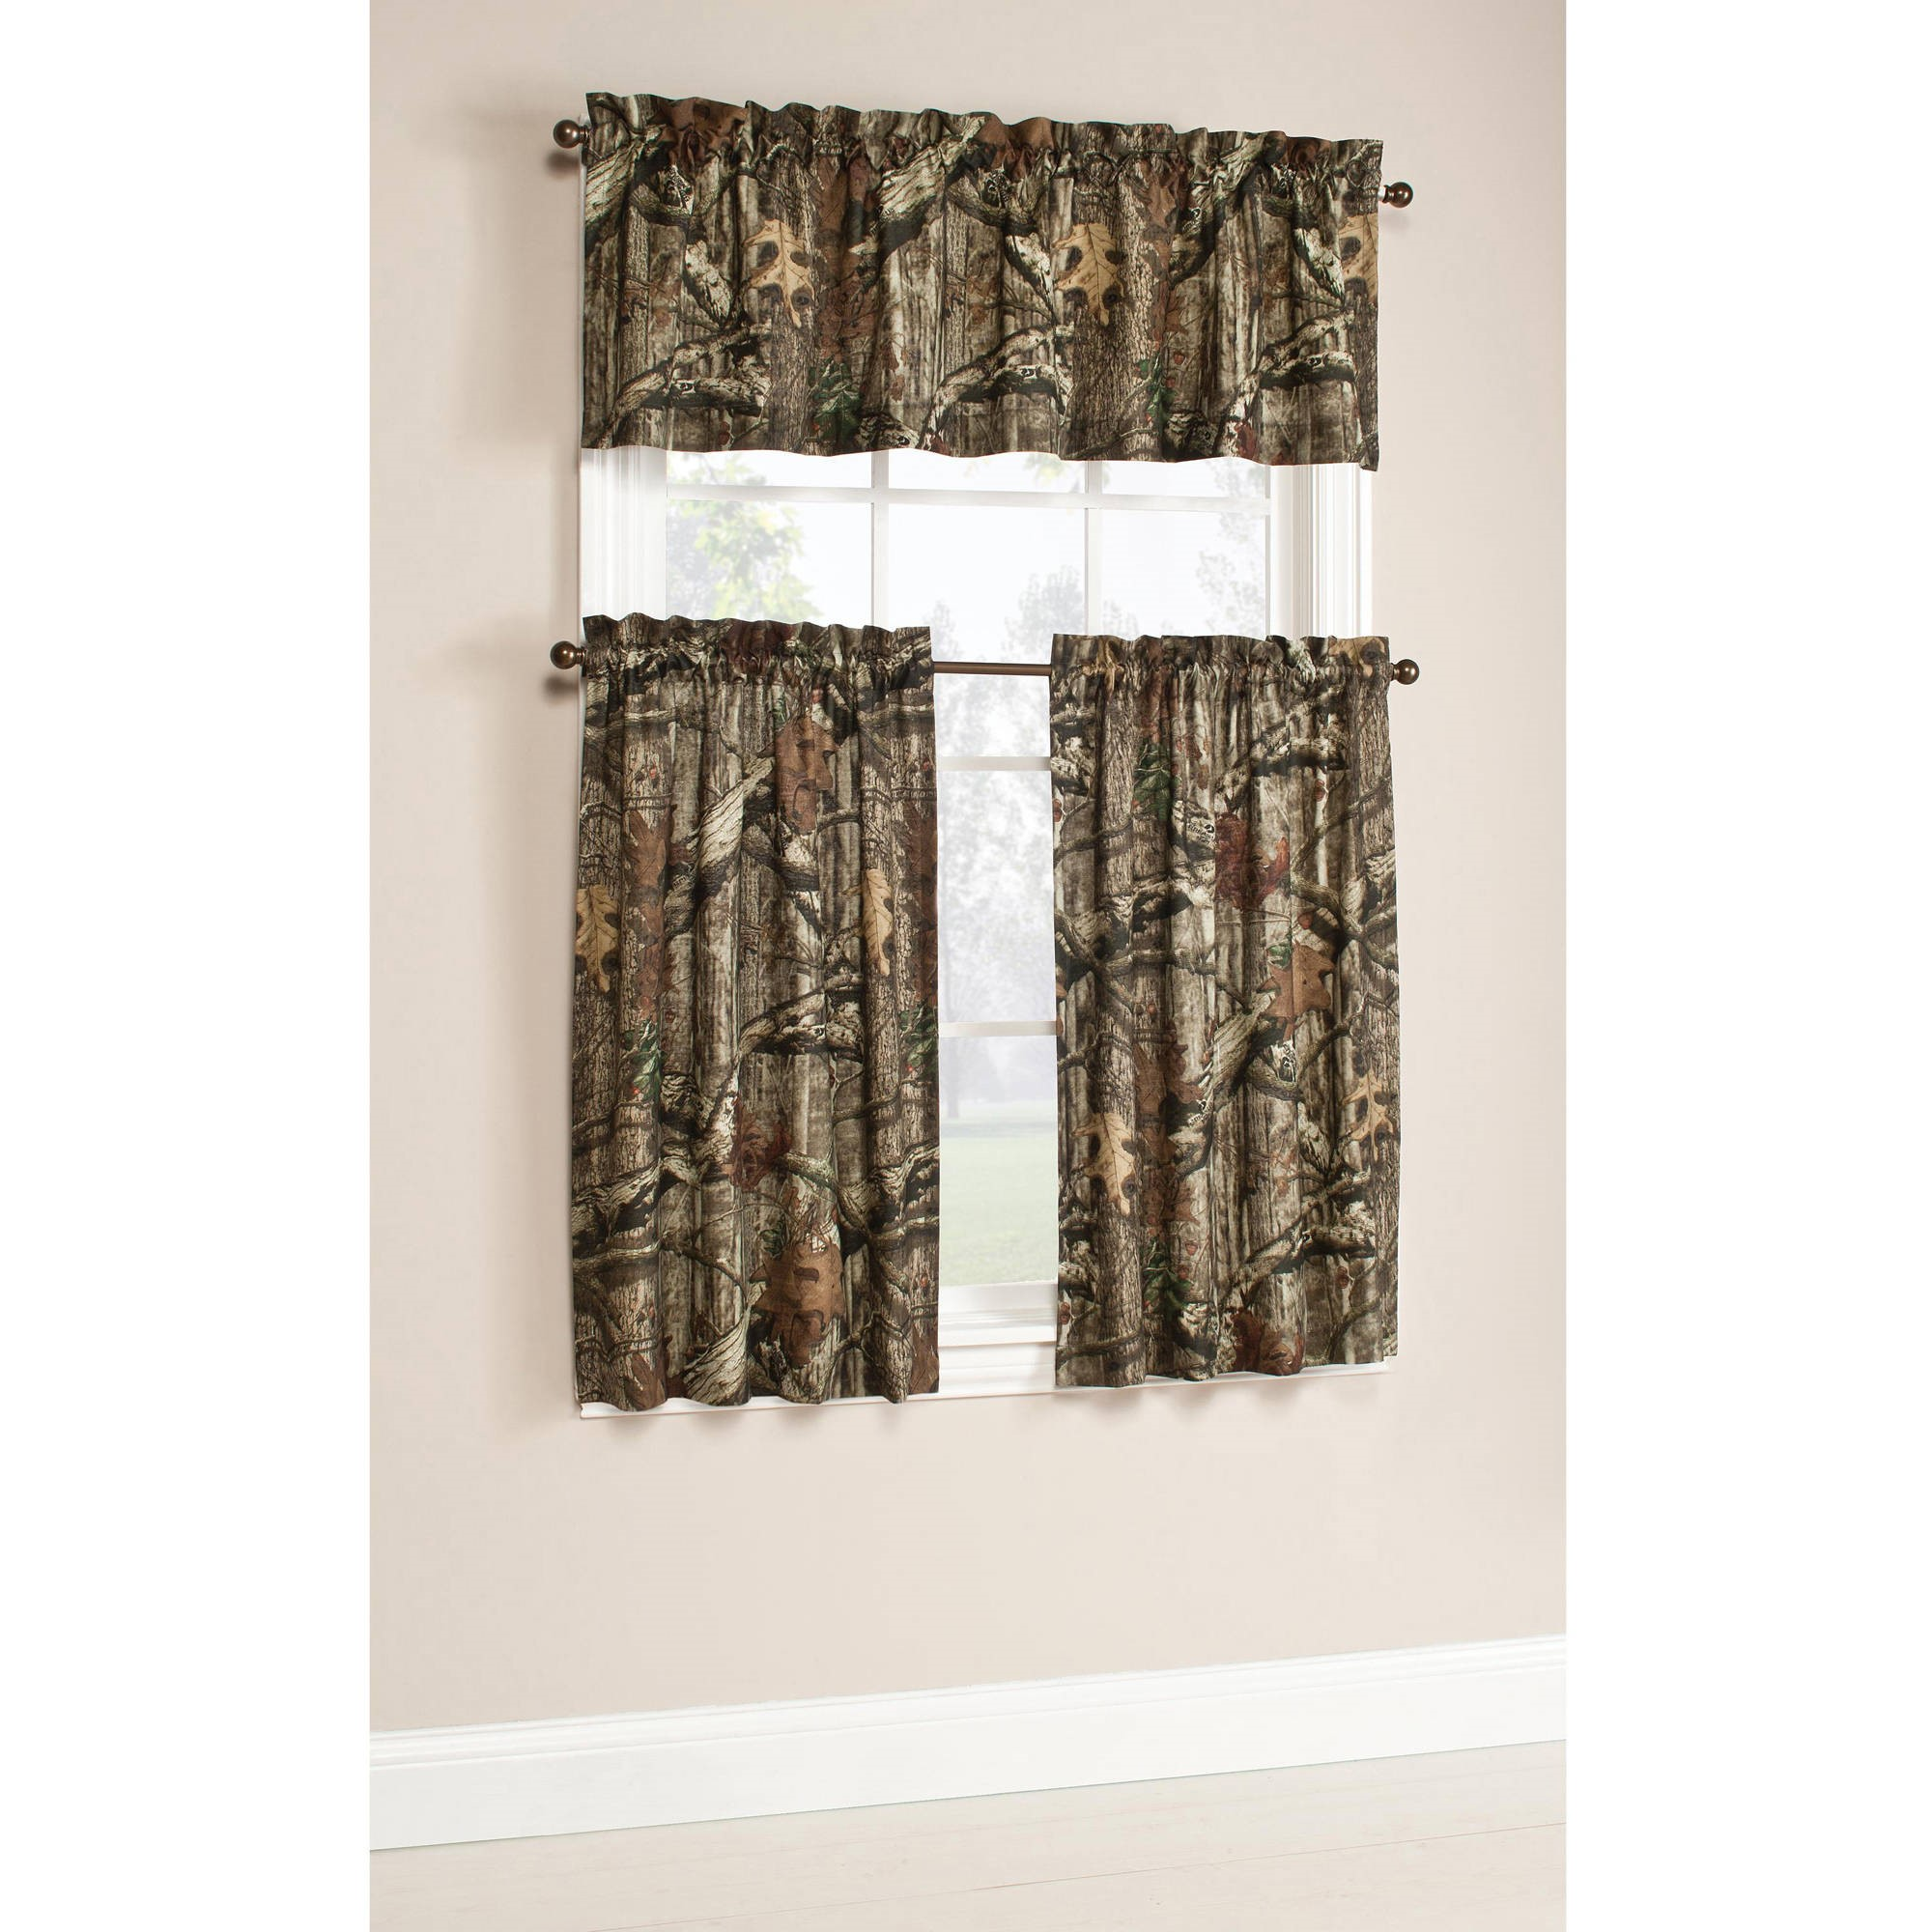 Delicieux Mossy Oak Break Up Infinity Camouflage Print Window Kitchen Curtains, Set  Of 2 Or